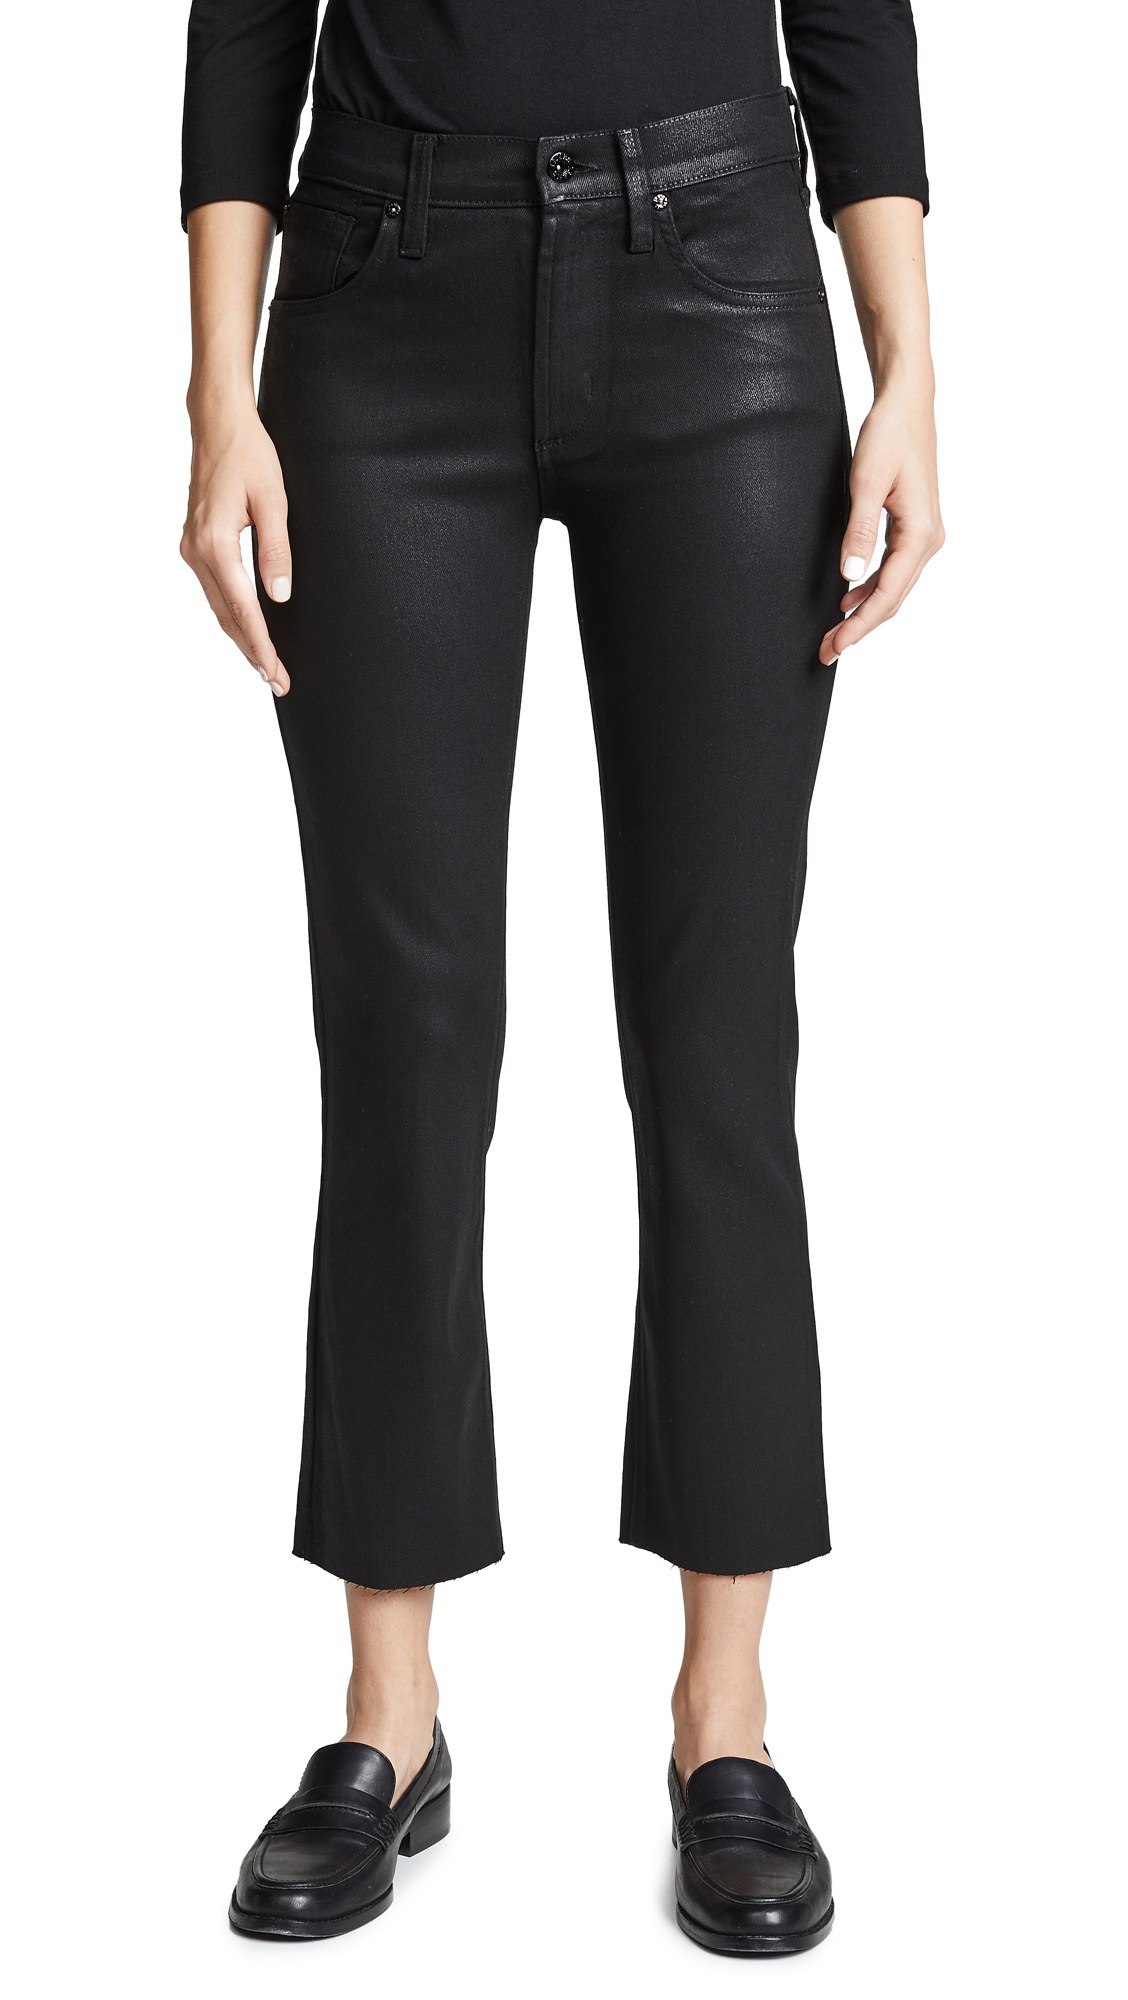 JAMES JEANS Calvin High Rise Coated Jeans in Black Glossed